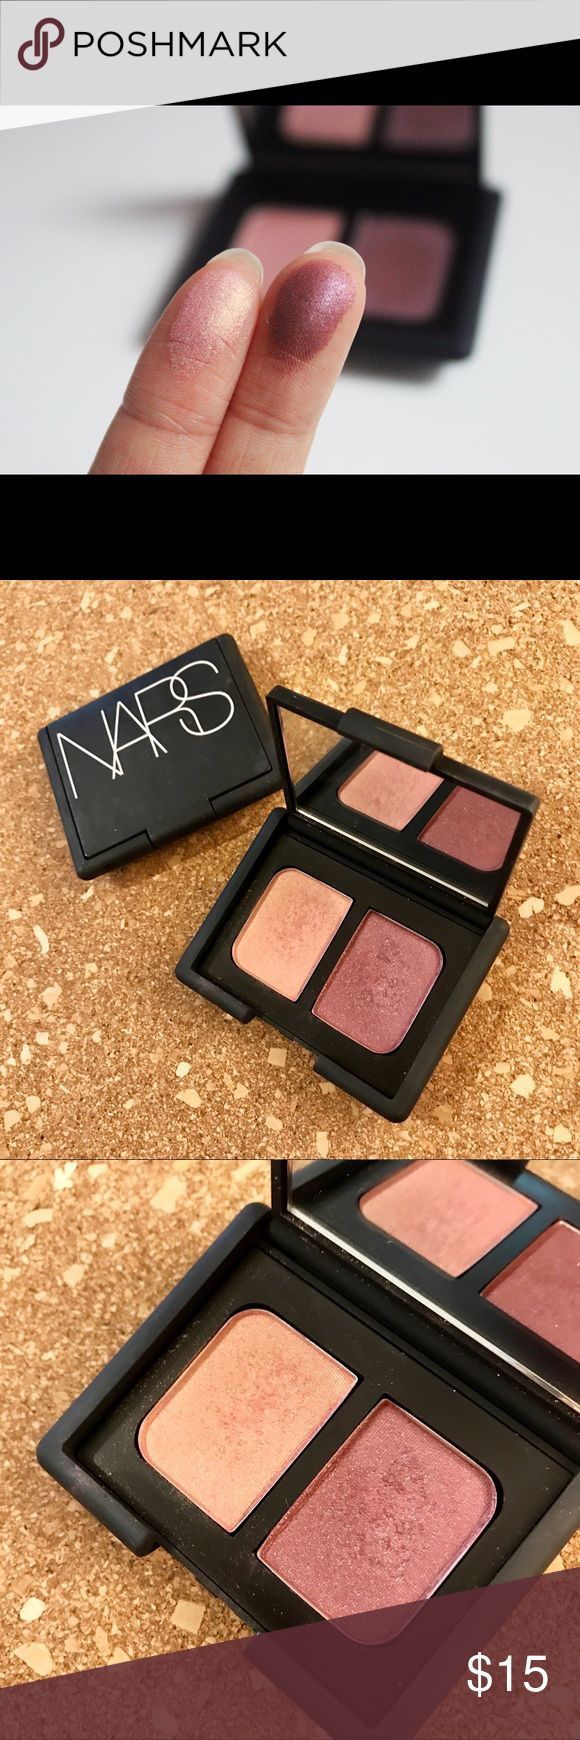 NARS Eyeshadow Duo in Kuala Lumpur Neutral, slightly pink Eyeshadow Duo by NARS. I have maybe used it once but probably just looked and tried the colors on my hand. Otherwise perfect condition. It's a fabulous Palette but I just don't wear Eyeshadow enough! Neiman Marcus Makeup Eyeshadow